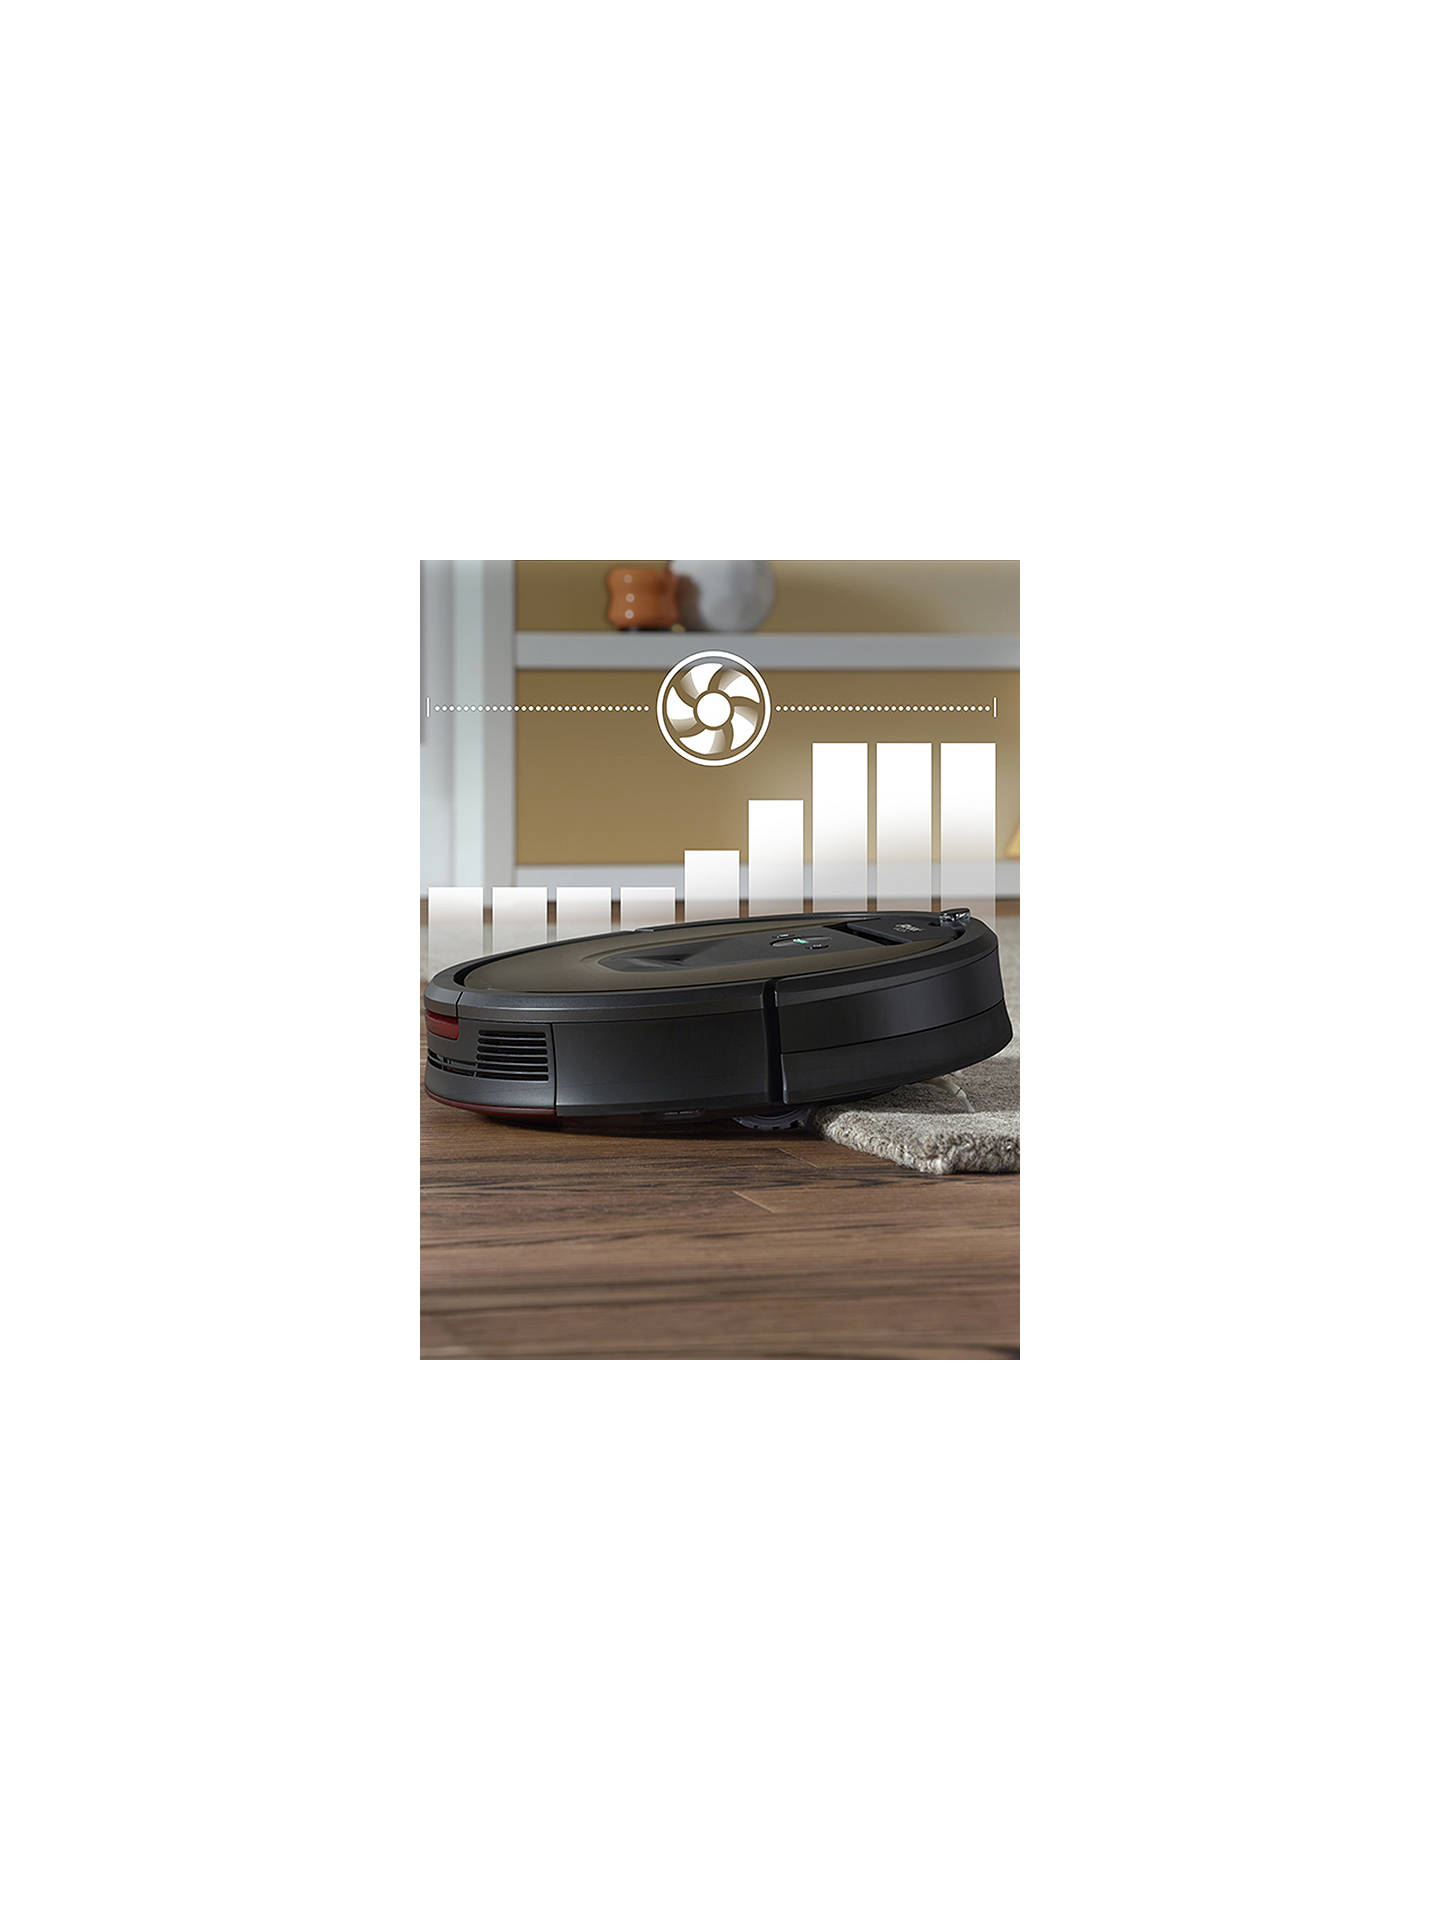 iRobot Roomba 980 Robot Vacuum Cleaner, Black / Brown